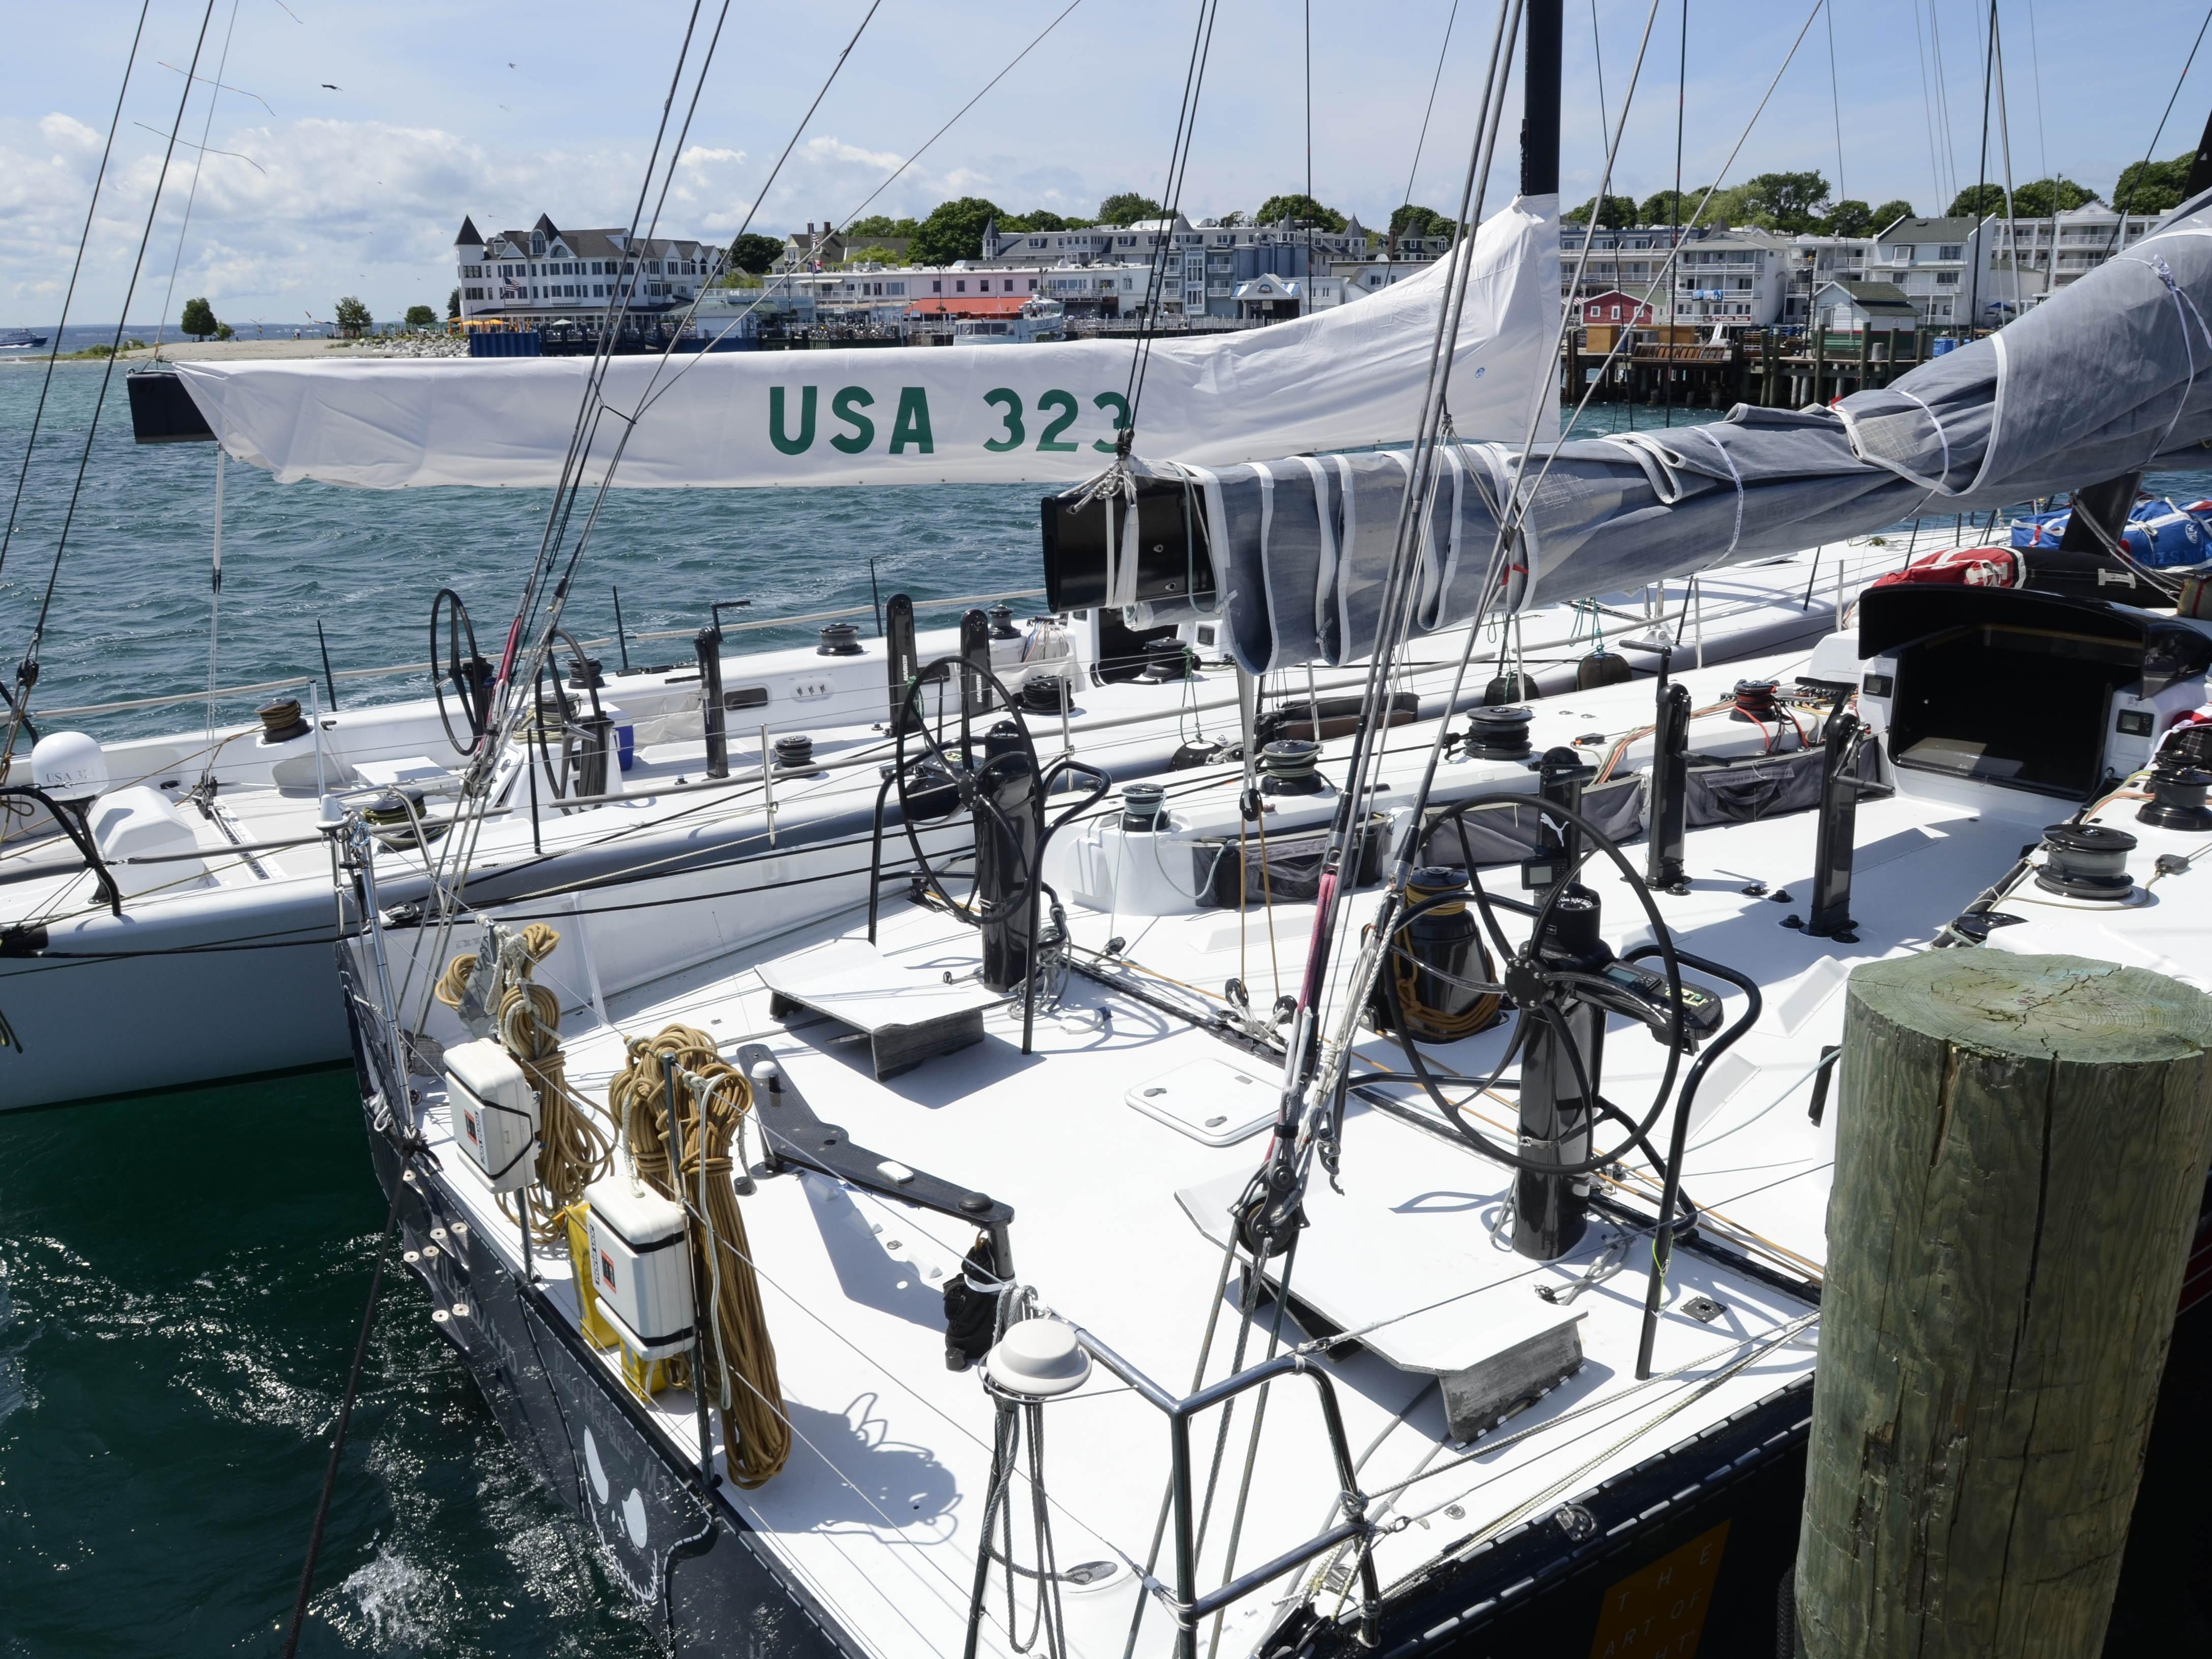 In 2013, Equation and Il Mostro were tied up to each other on the docks at Mackinac Island by early Sunday afternoon as both took the Shore Course. This year, the fastest boats in the fleet are forced to take the Cove Island Course.